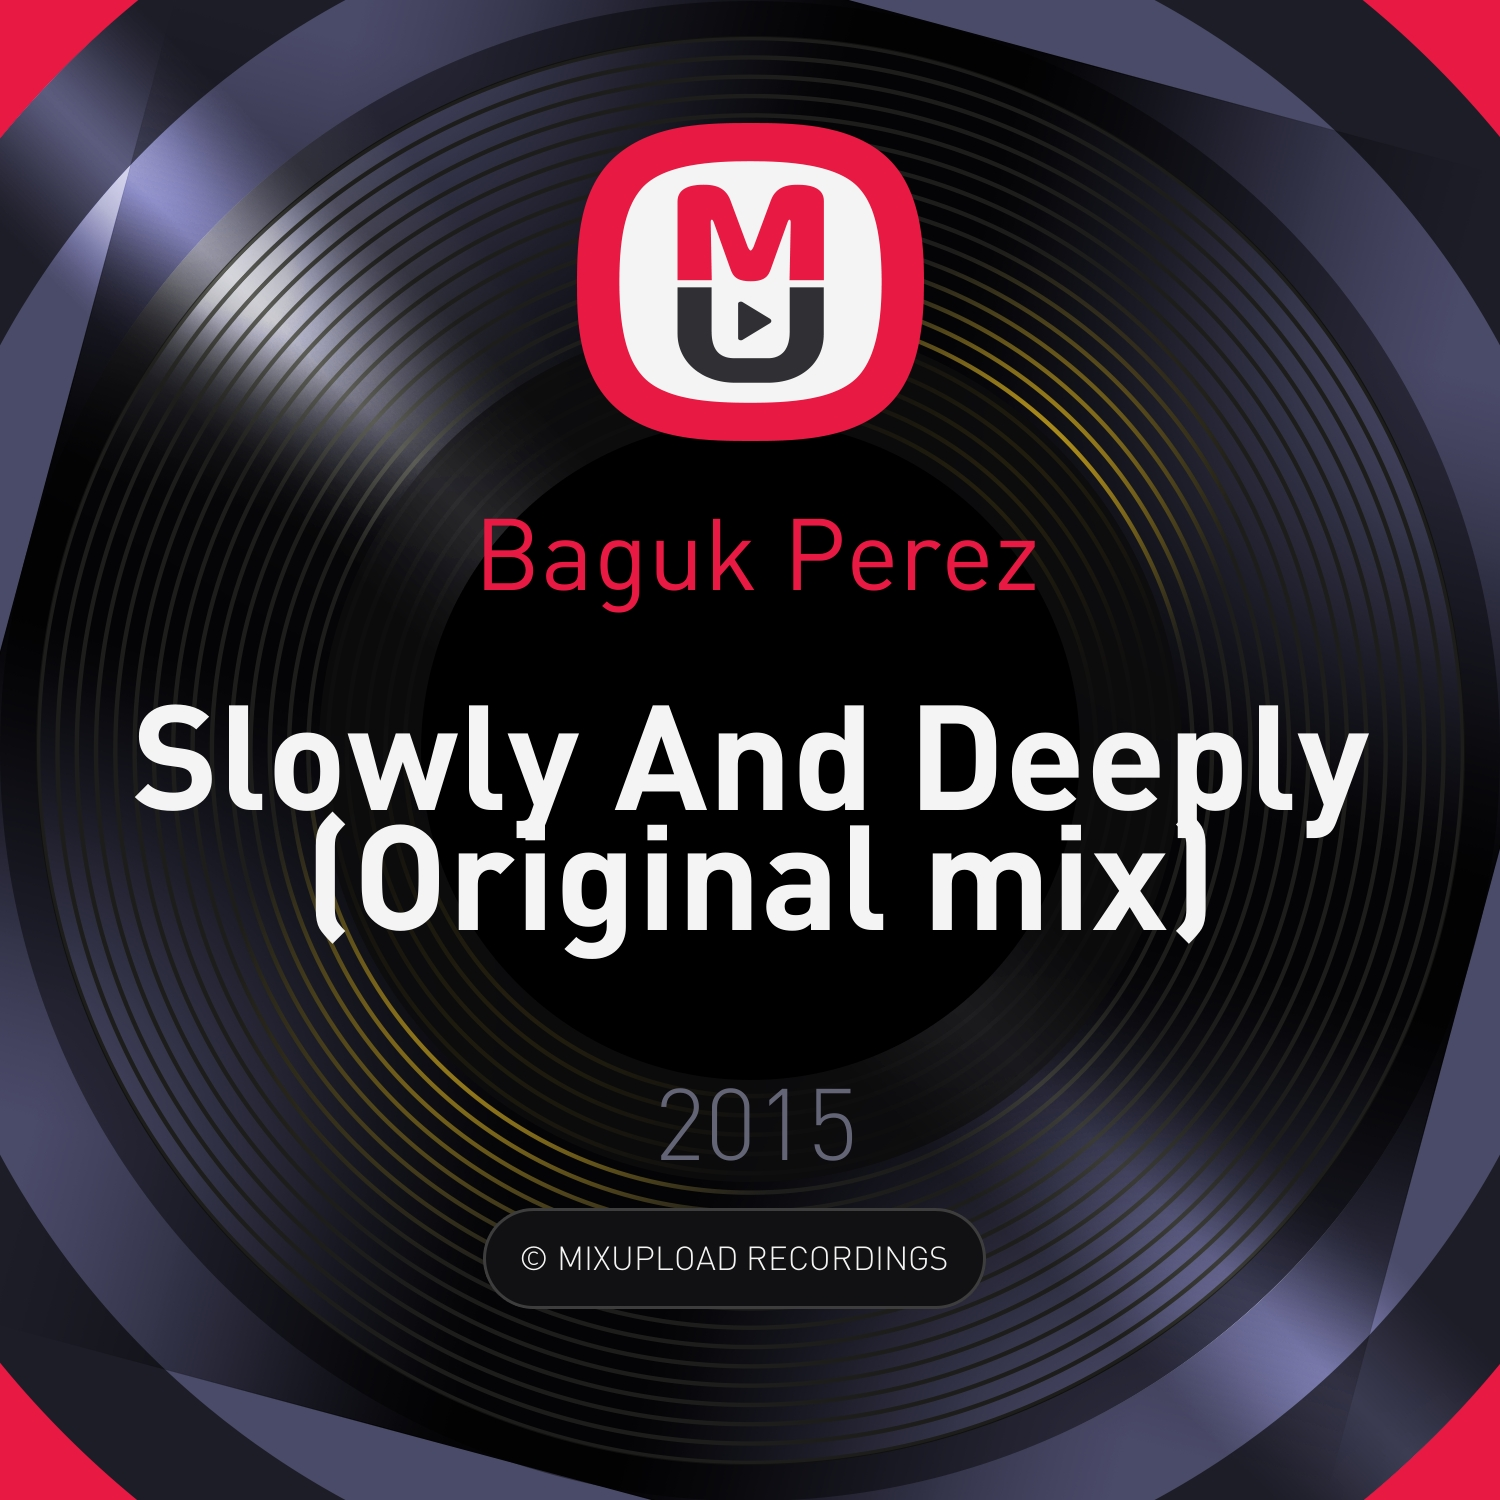 Baguk Perez - Slowly And Deeply (Original mix)